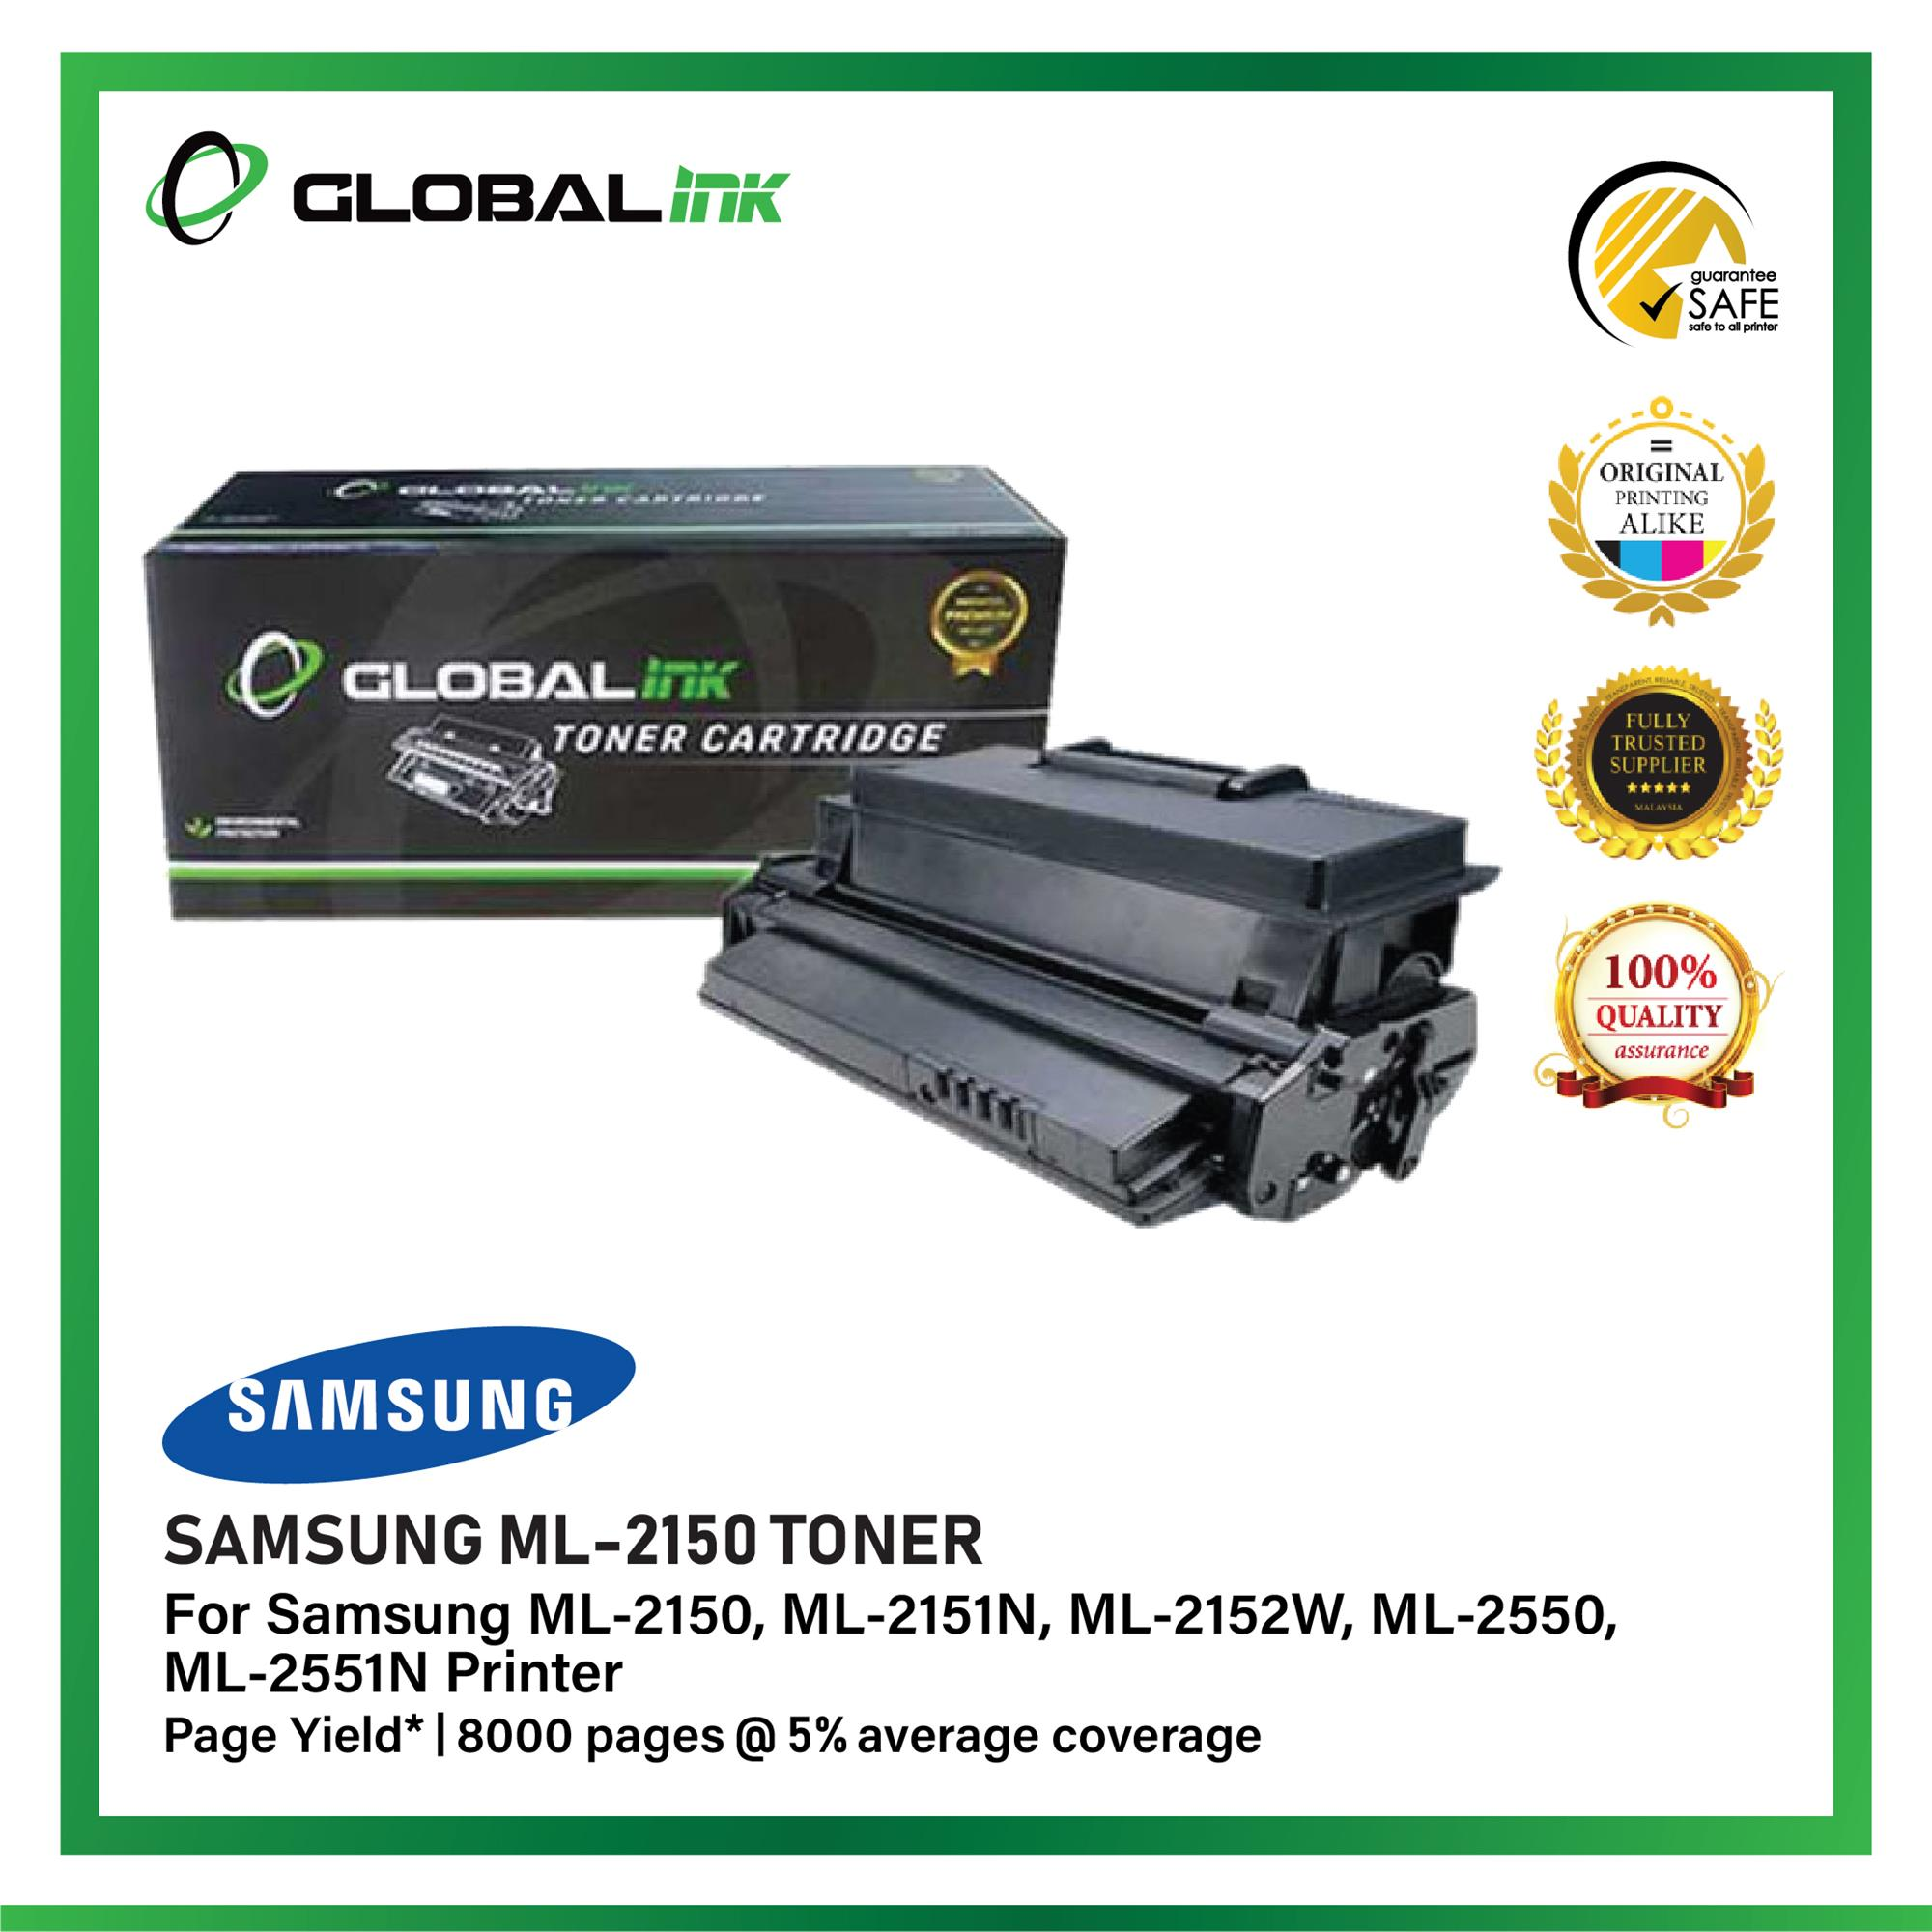 SAMSUNG ML-2150 PRINTER DRIVERS